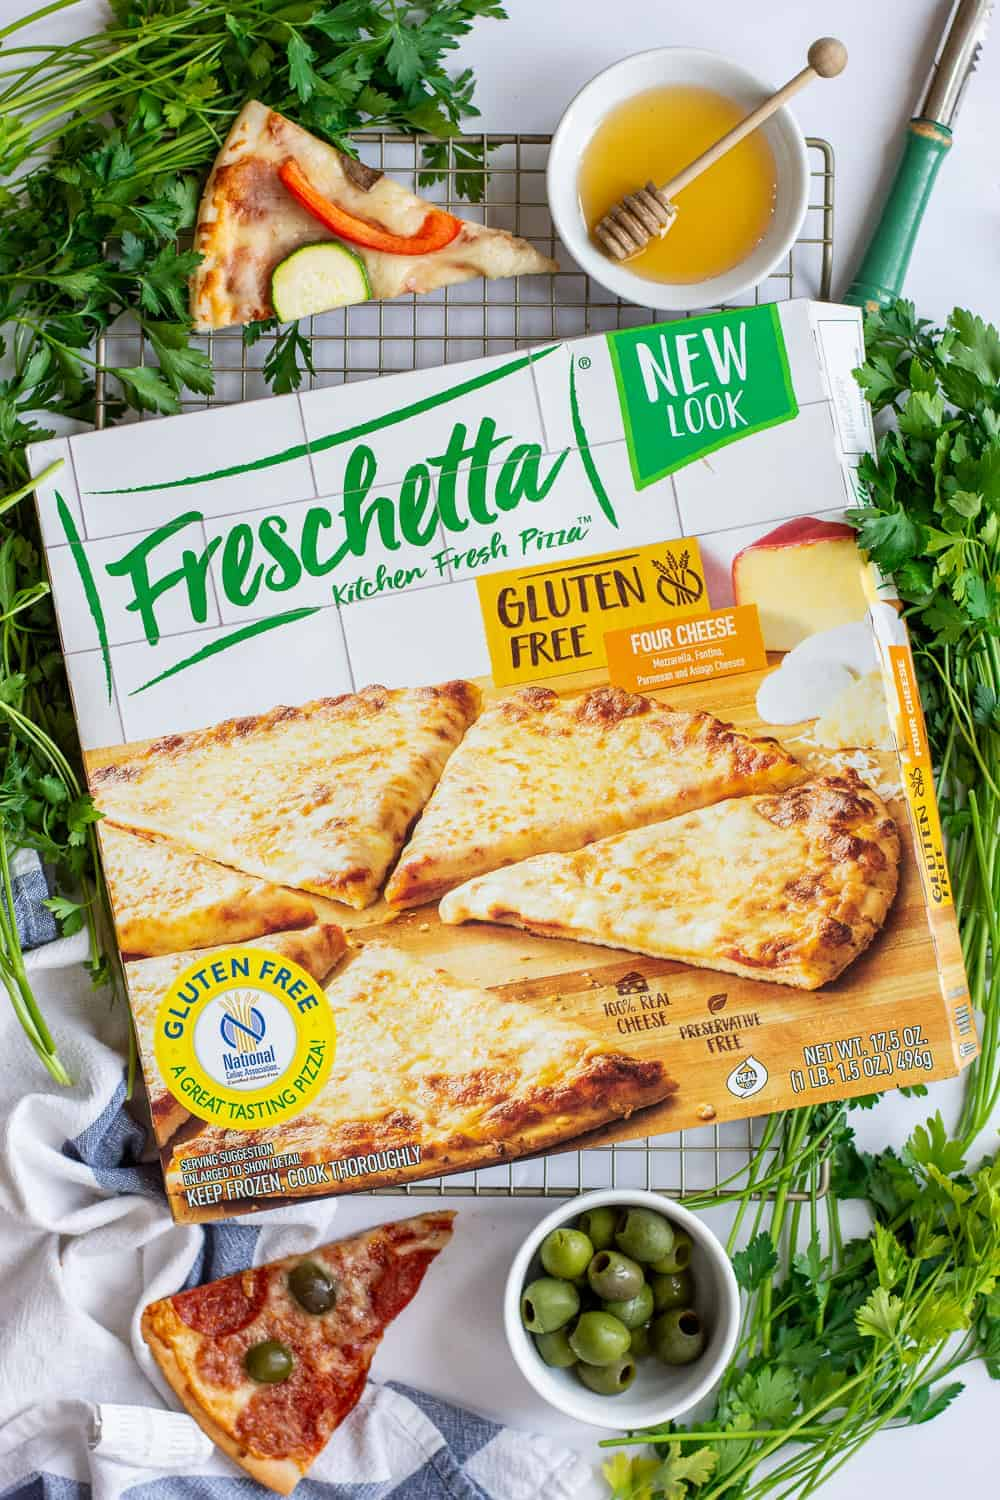 Best Gluten Free Frozen Pizza 3 Ways | Gluten Free Frozen Pizza, Gluten Free Pizza, Family Pizza Night, Gluten Free Pizza 3 Ways, Freschetta Gluten Free Pizza #glutenfreepizza #glutenfreefrozenpizza #freschettaglutenfreepizza || The Butter Half via @thebutterhalf